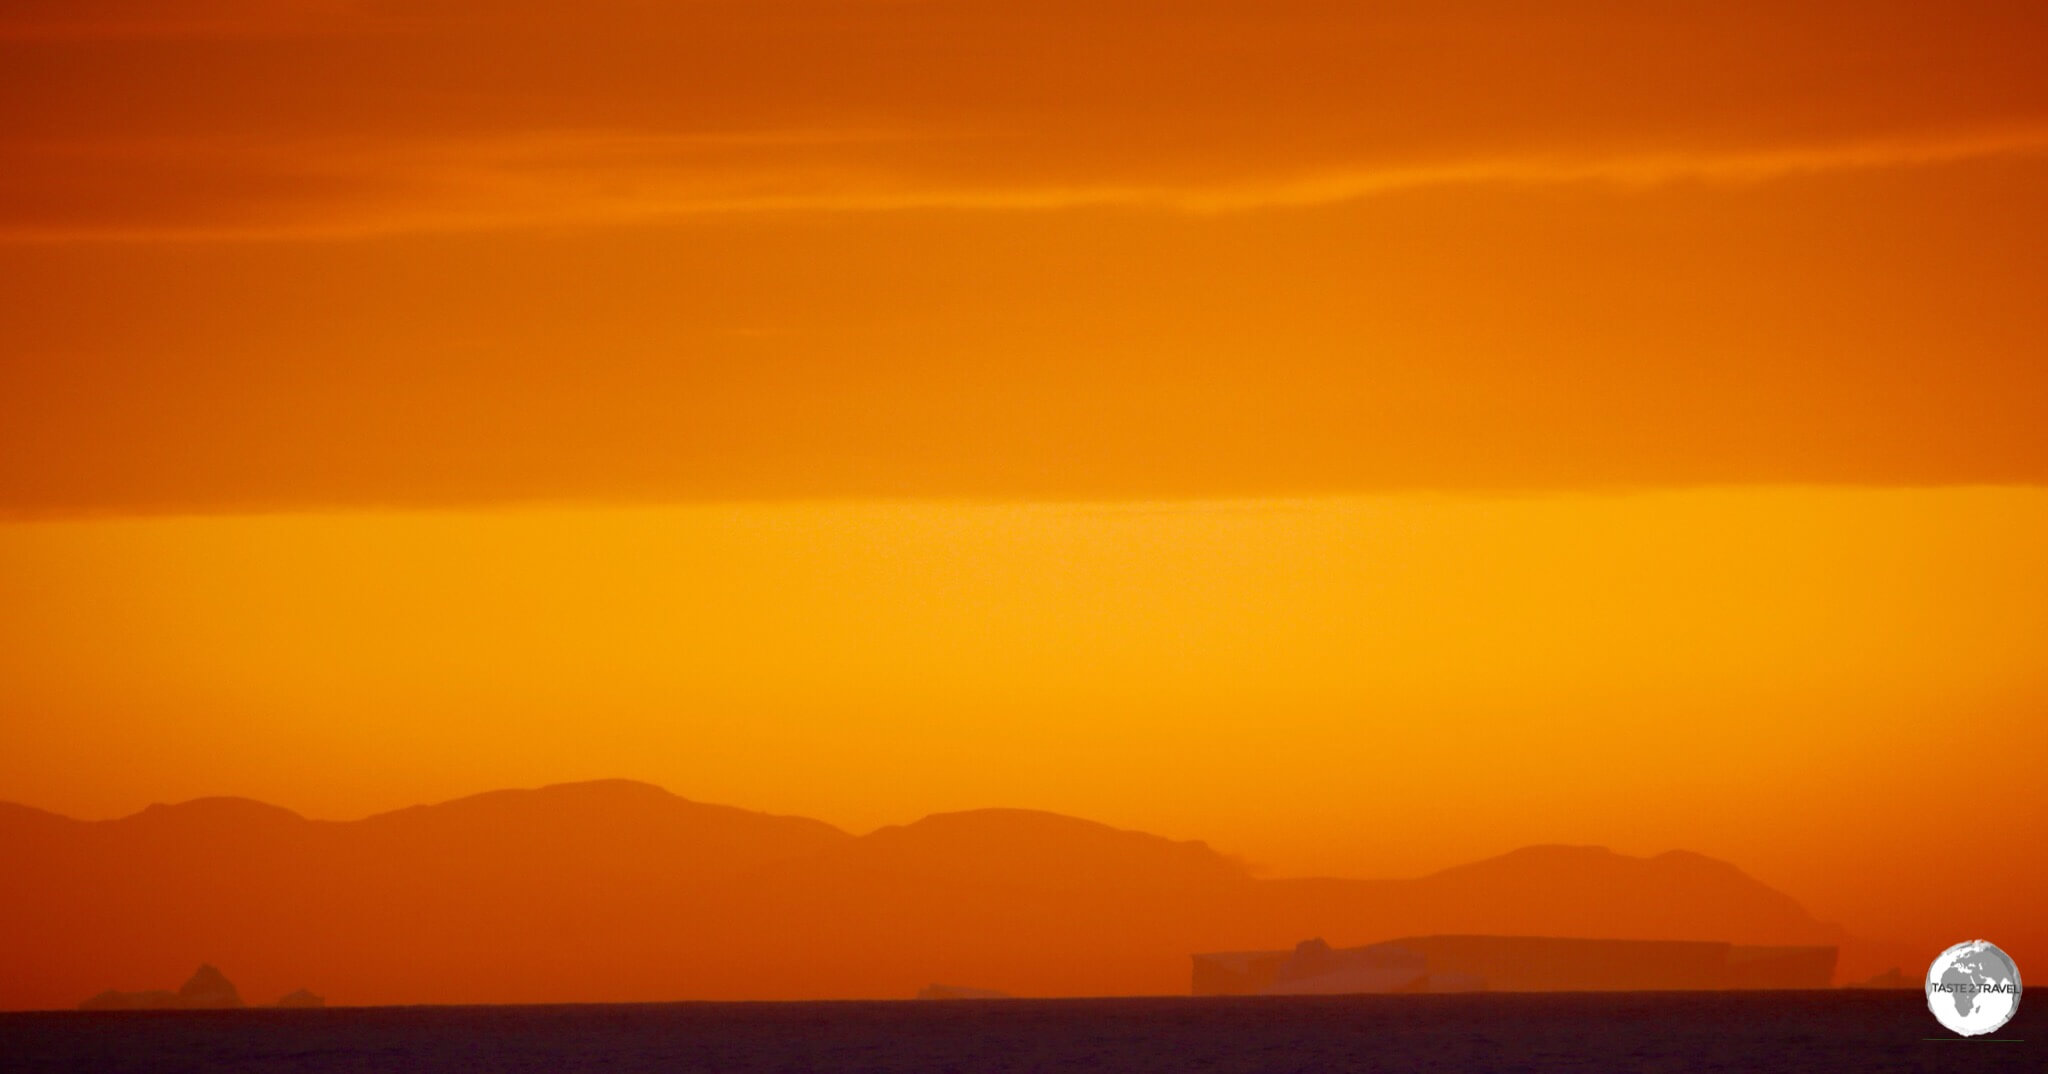 The rectangular shape of an iceberg stands out against a mountain range in the setting sun.